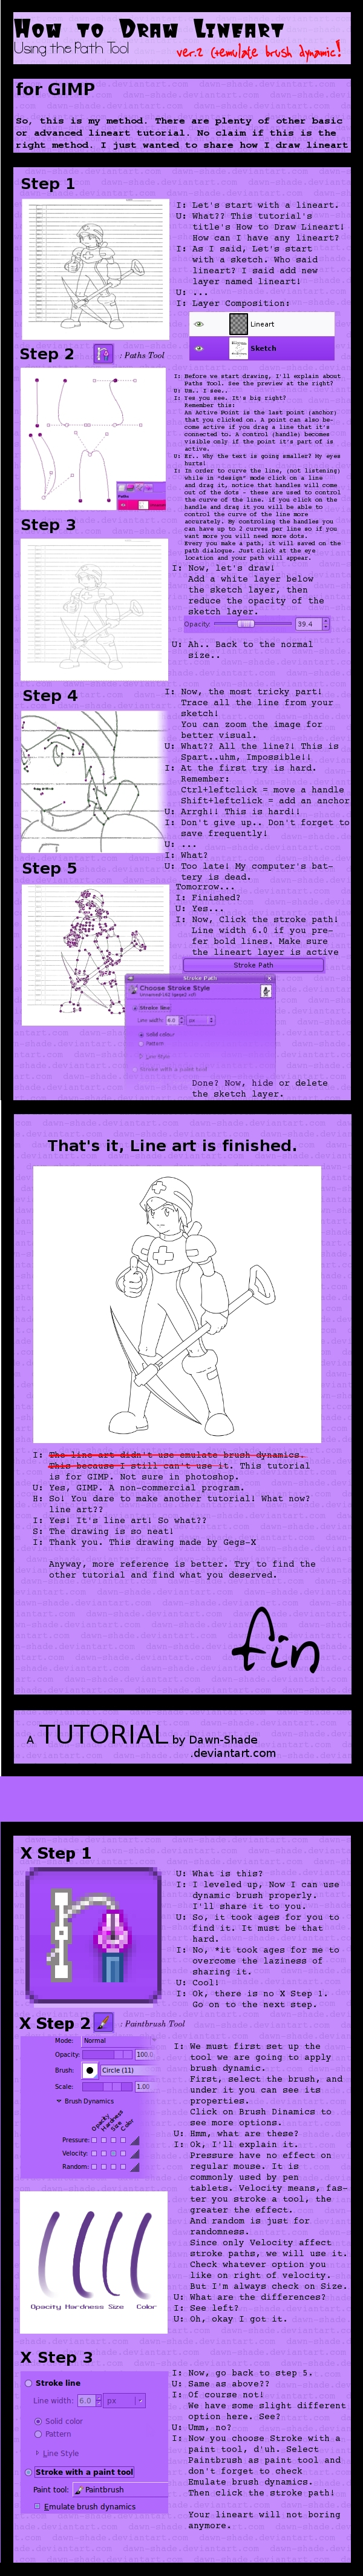 Drawing Lines Using Gimp : Line art tutorial v using gimp by dawn shade on deviantart